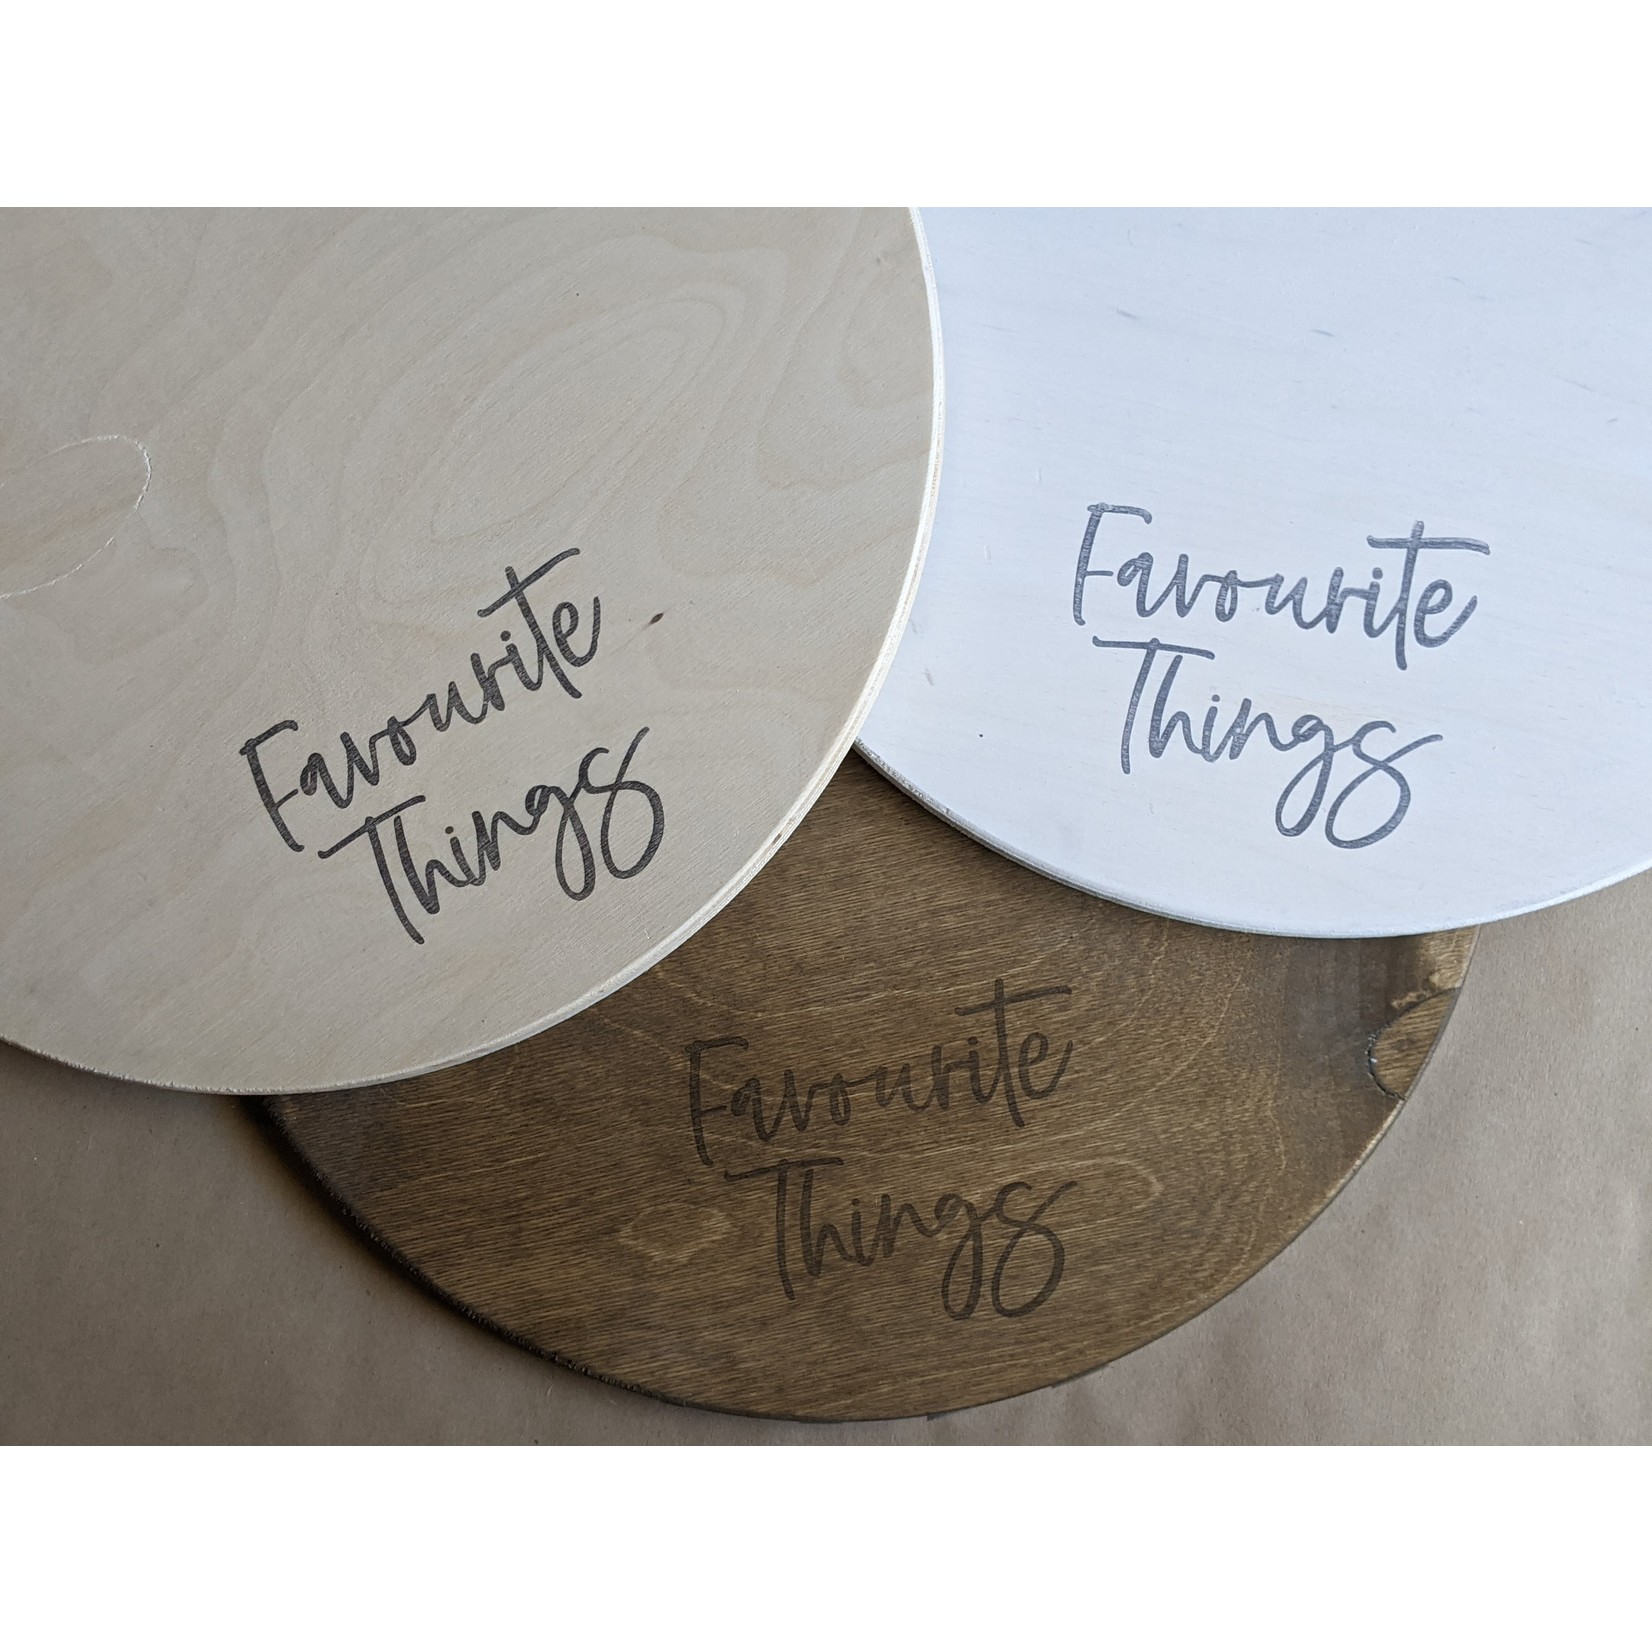 Favourite Things wood DIY kit picture Hanger - Dad (define.)